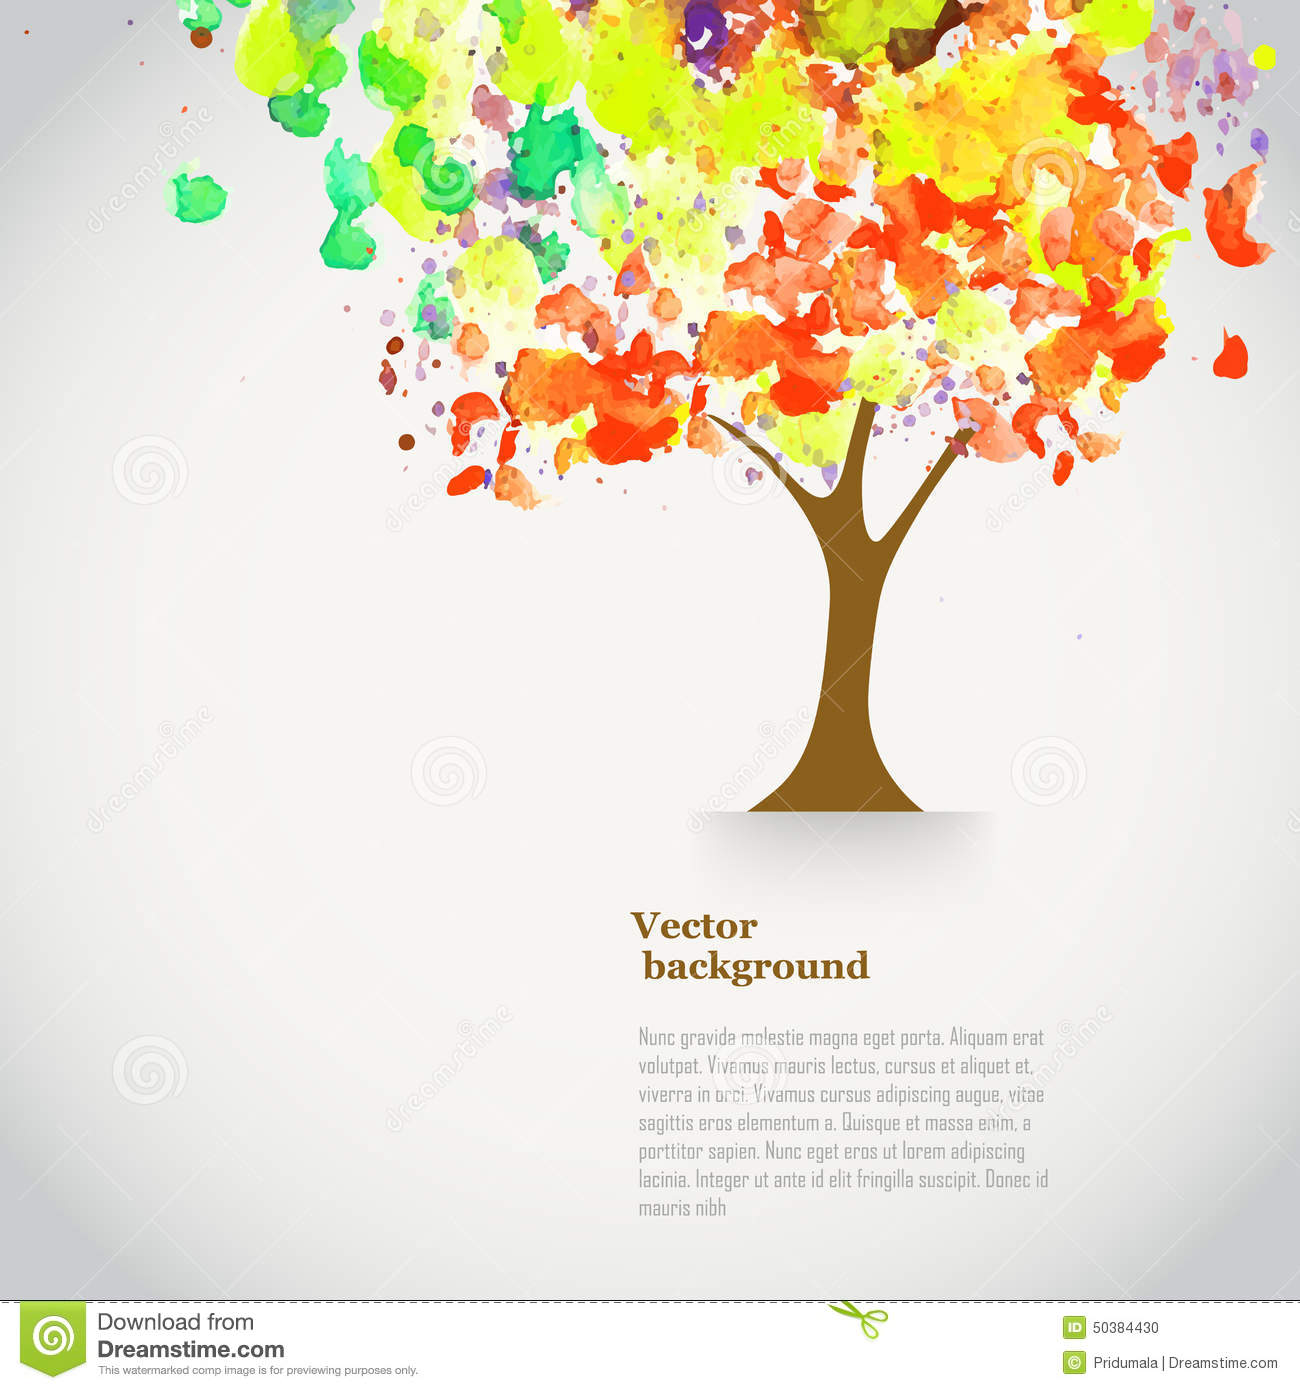 Vector Watercolor Autumn Tree With Spray Paint Autumnal